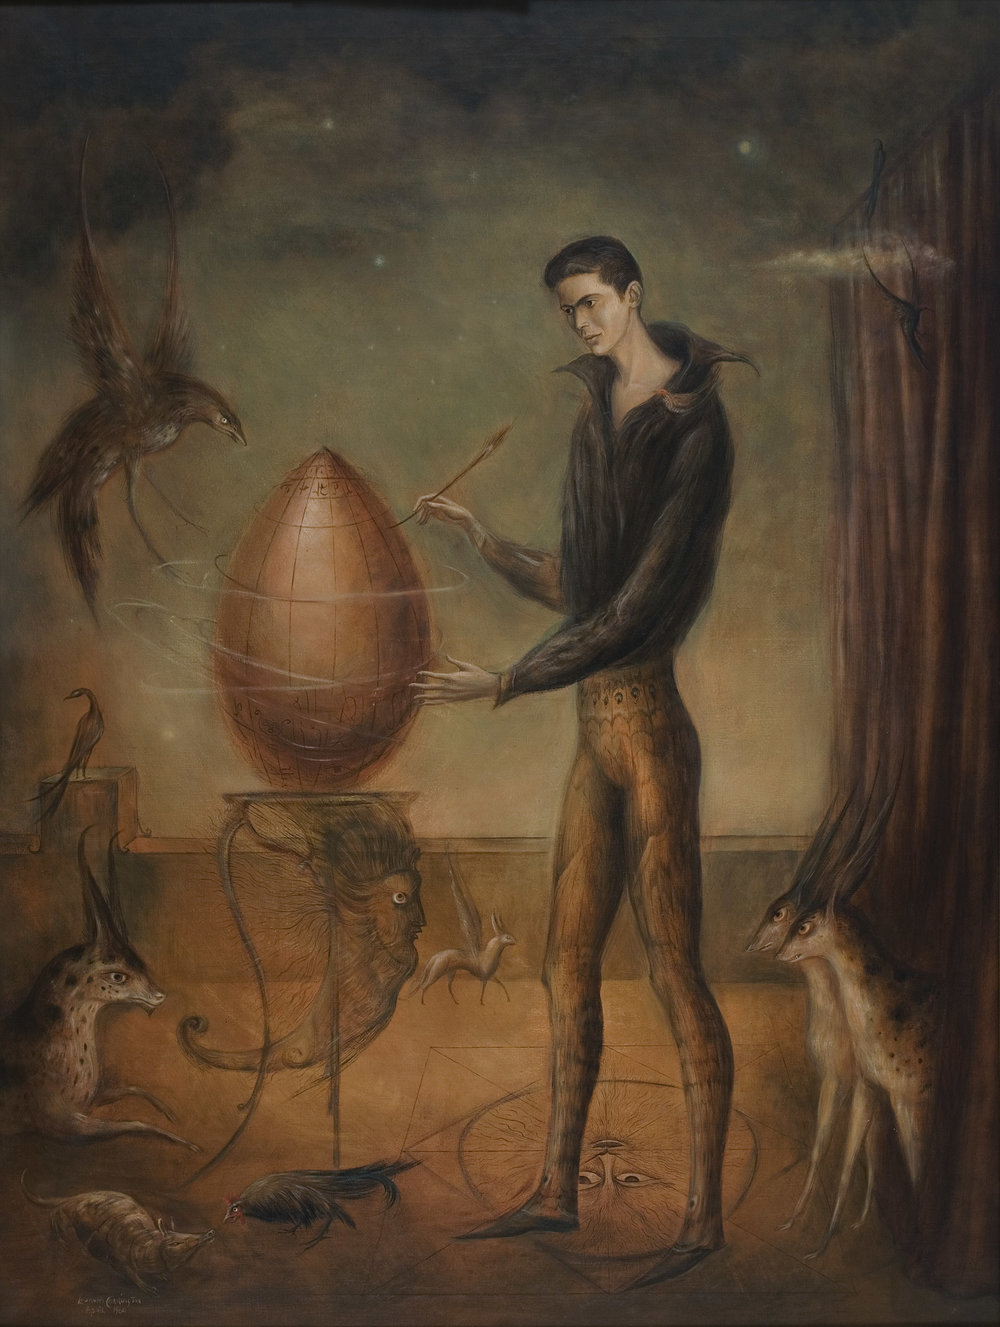 Leonora Carrington,  Quería ser pájaro , 1960, Oil on canvas, 47 x 35.5 inches (119 x 90 cm)